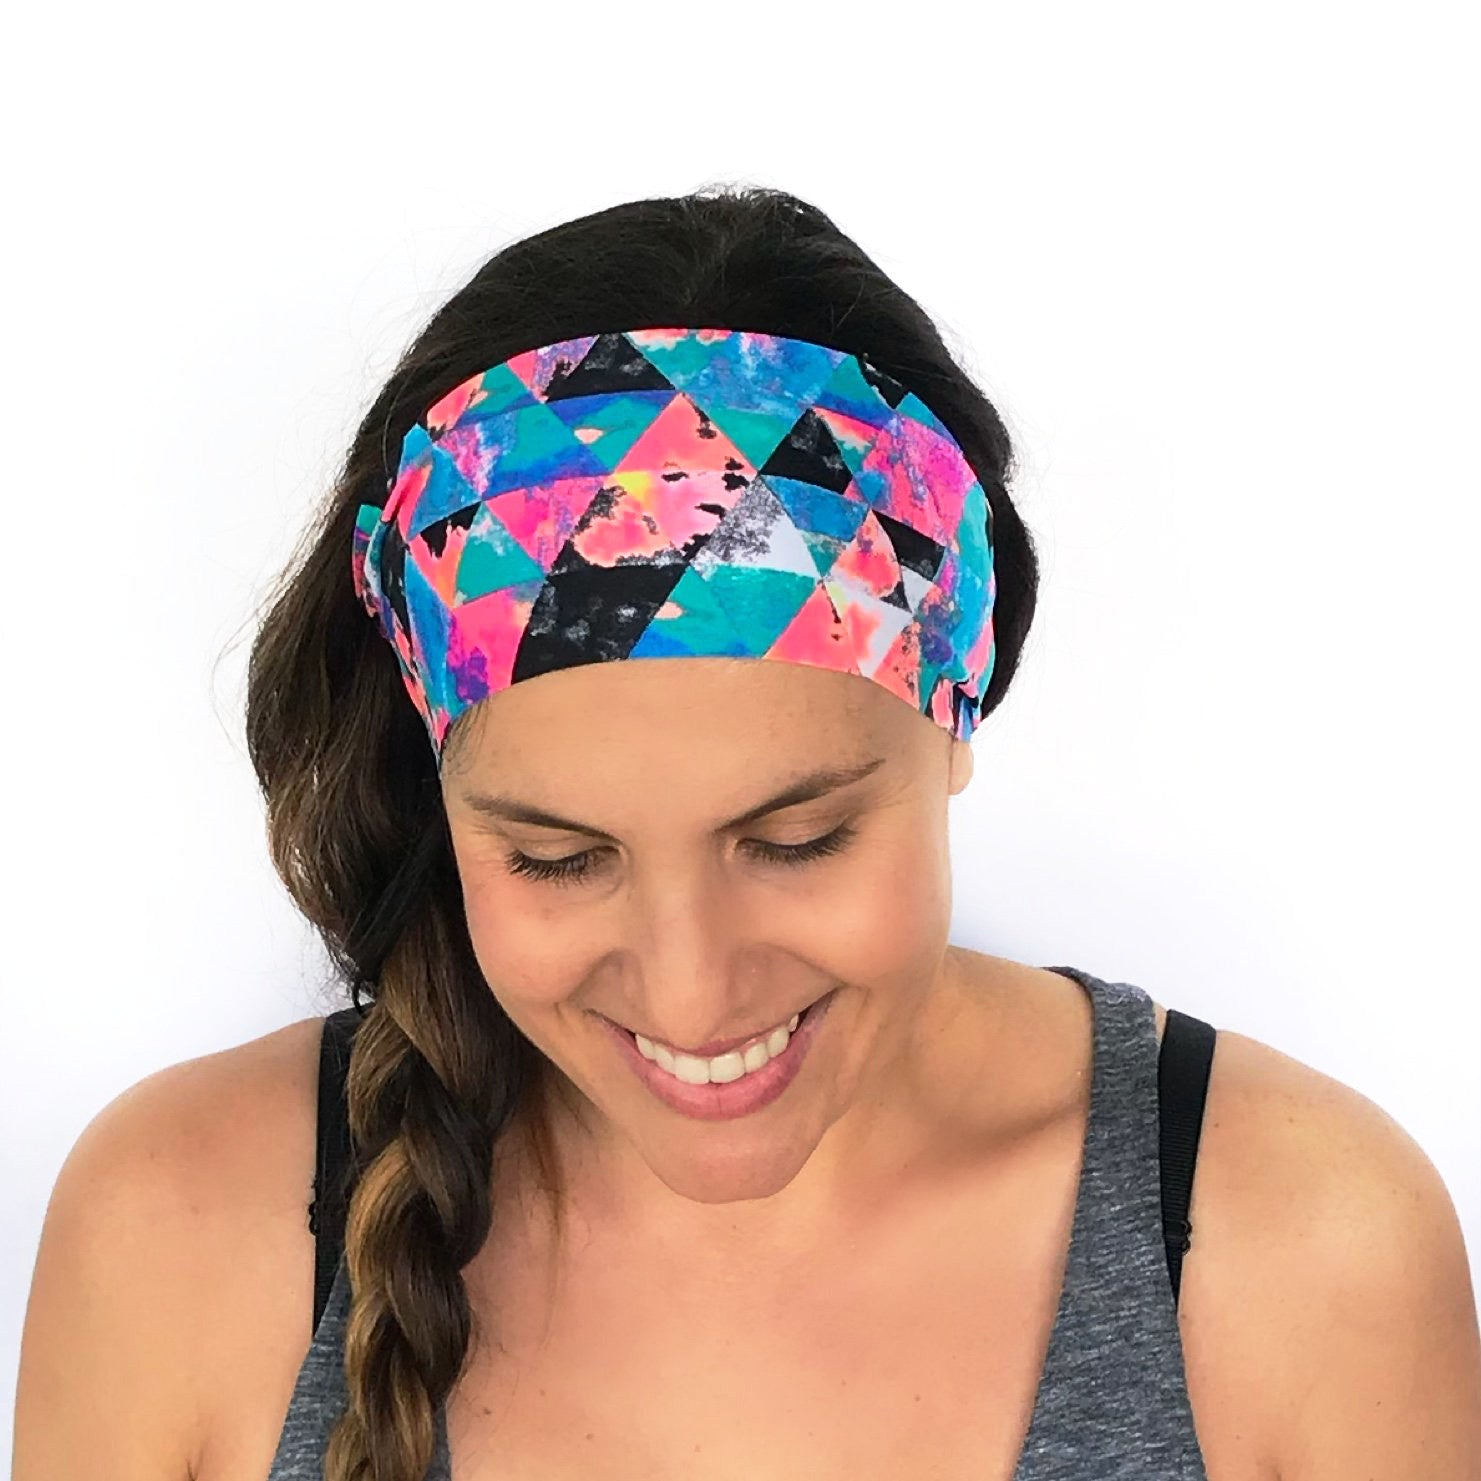 Mega Watt Workout Headband